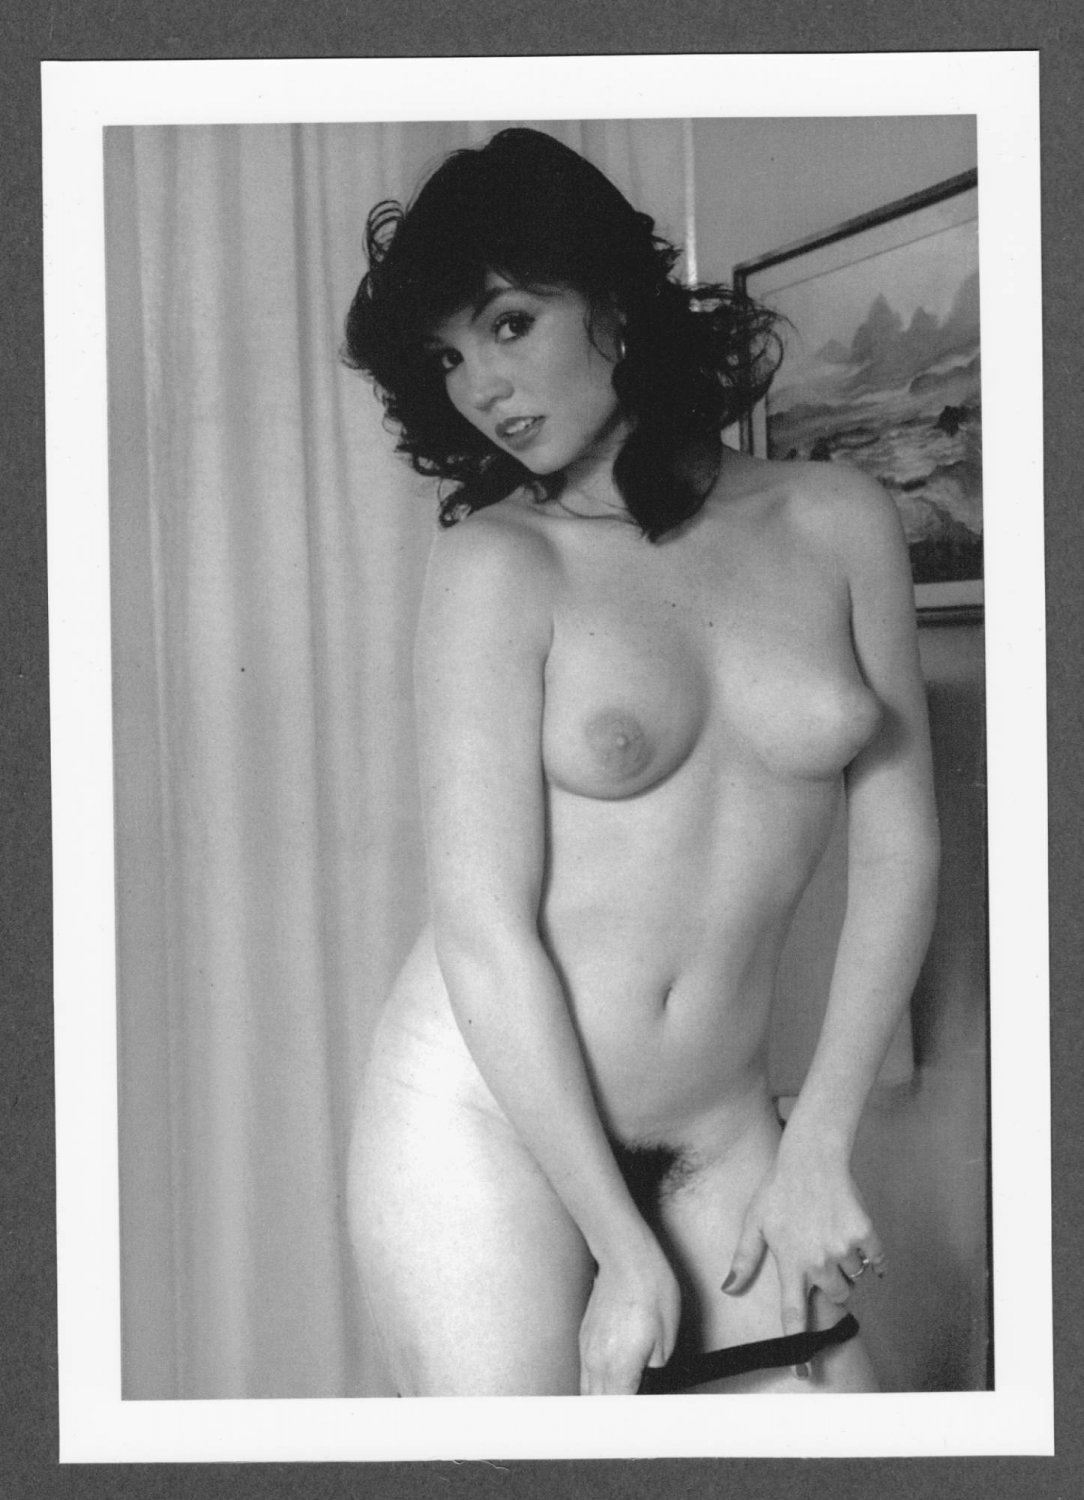 ADULT FILM ACTRESS KANDI BARBOUR TOPLESS BREASTS HAIRY PUSSY NEW REPRINT 5X7 #3